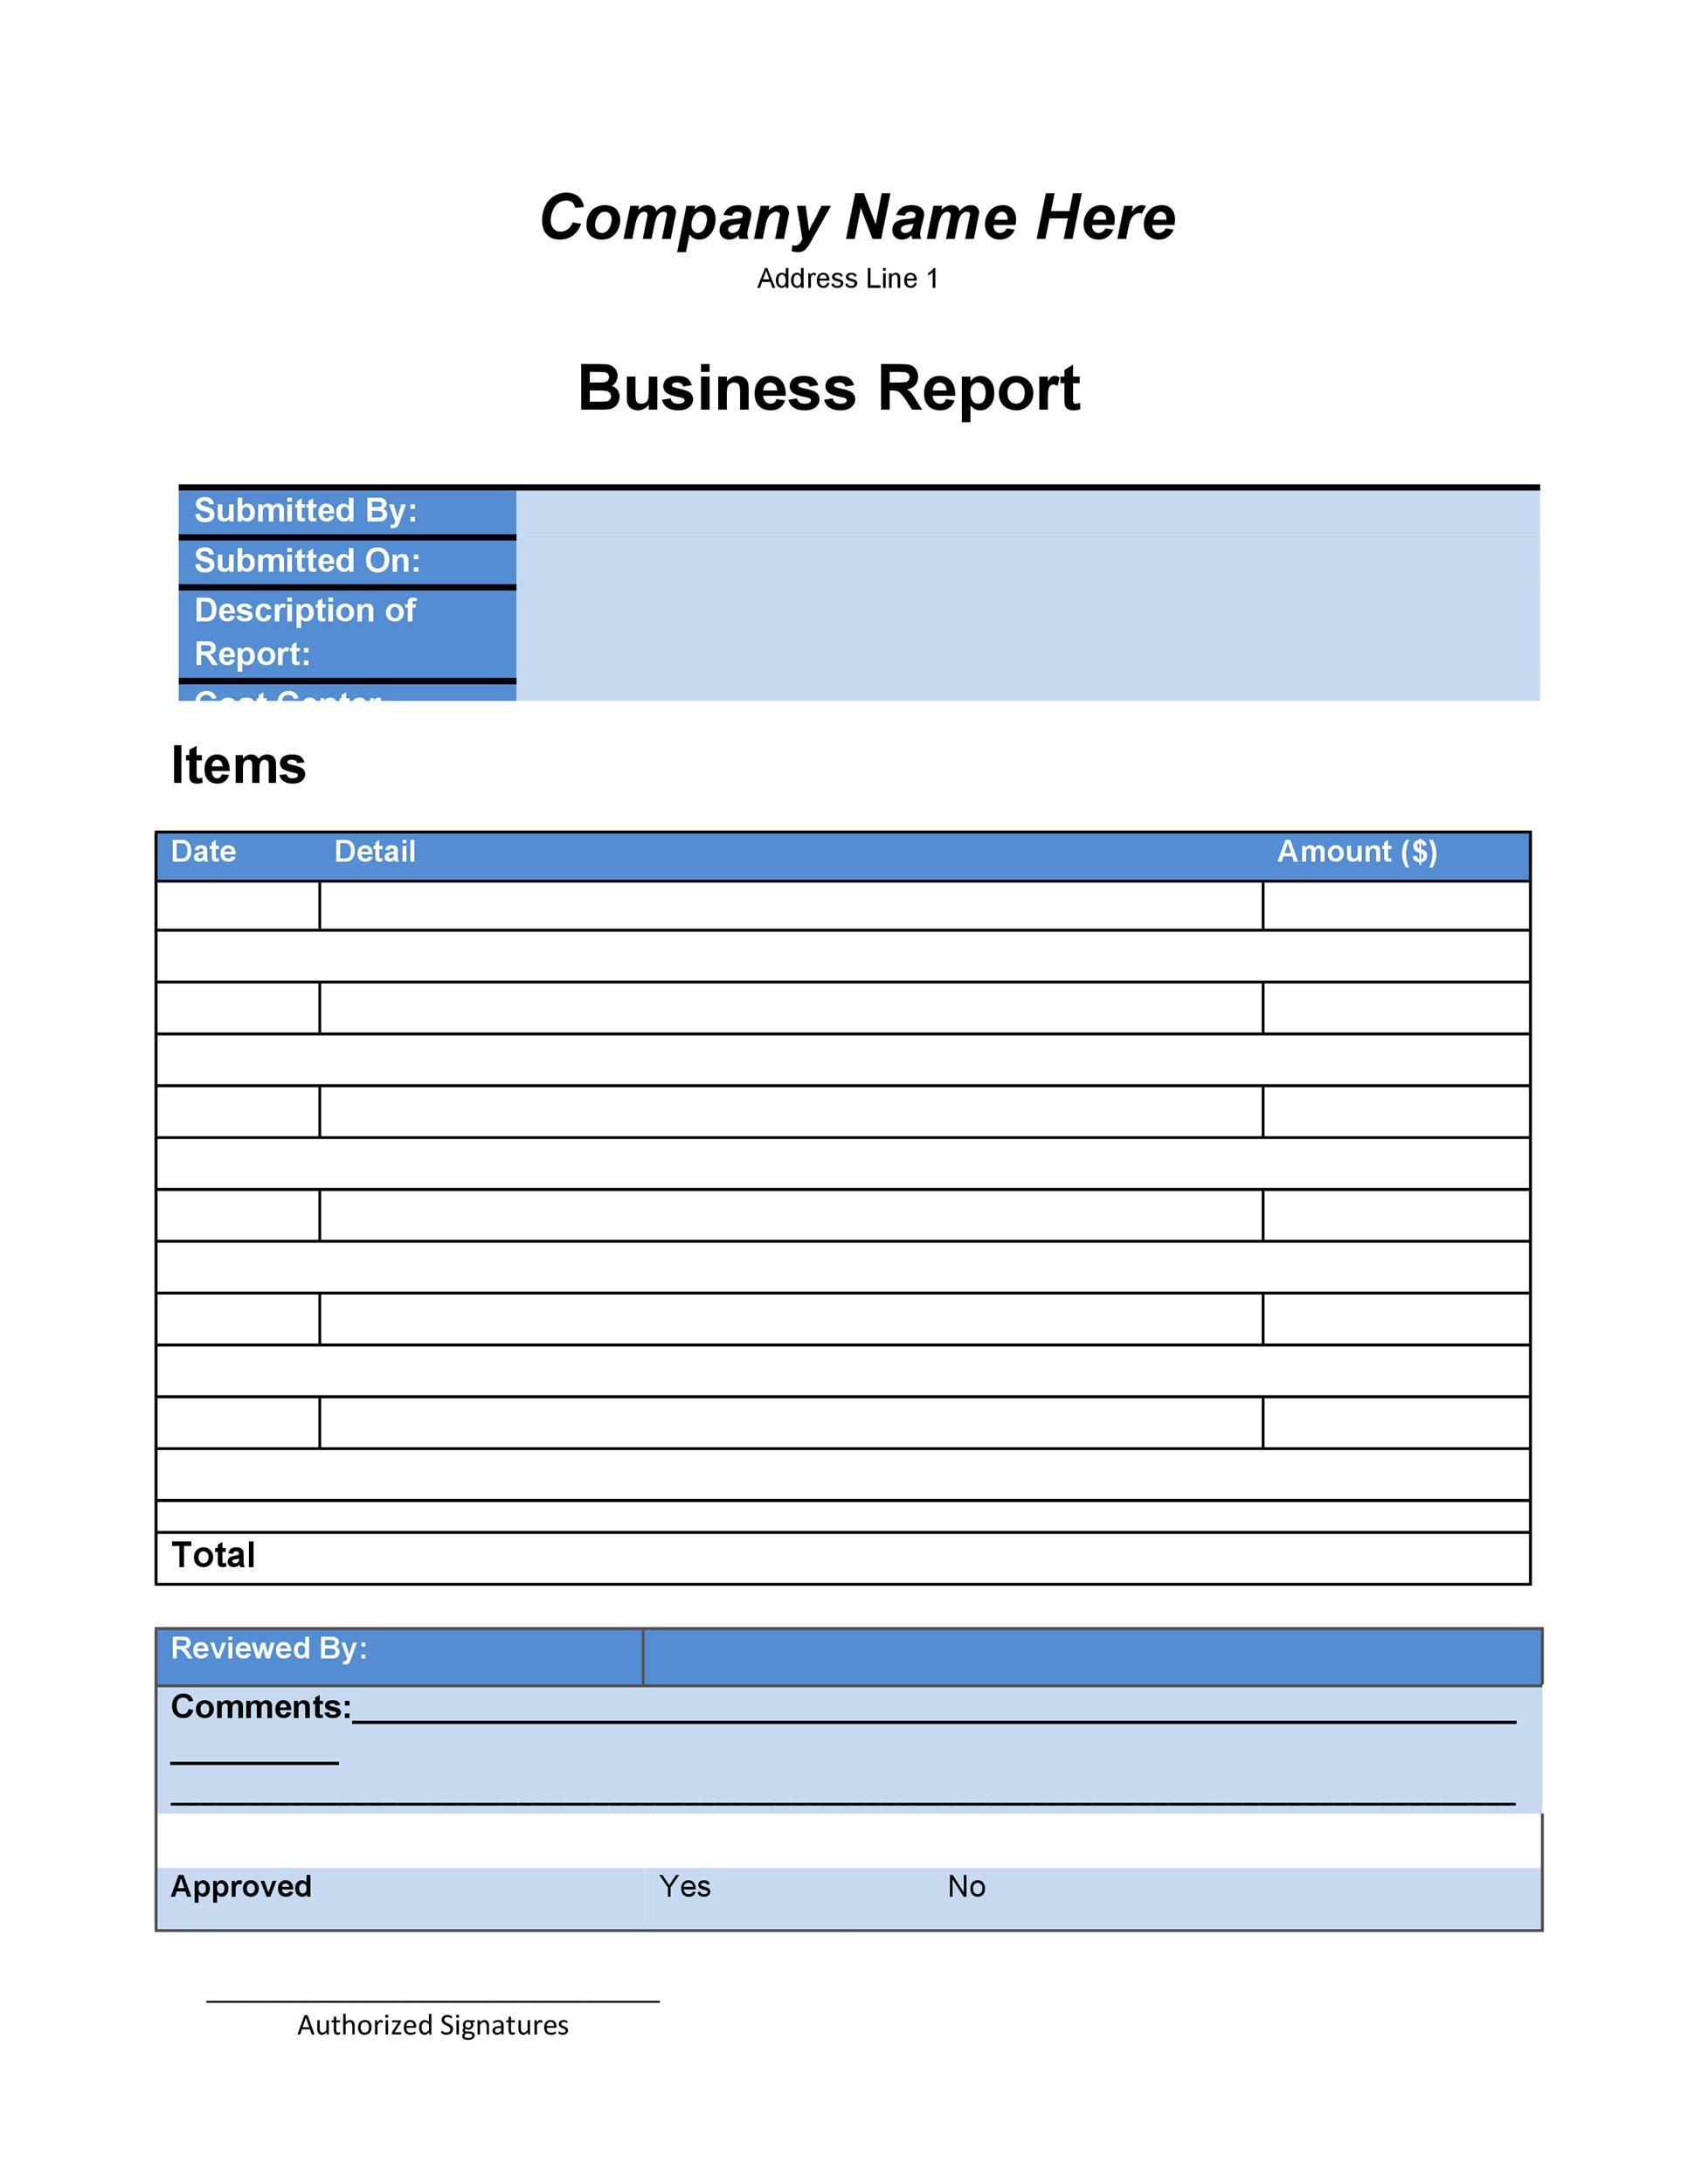 Company report template selol ink company report template cheaphphosting